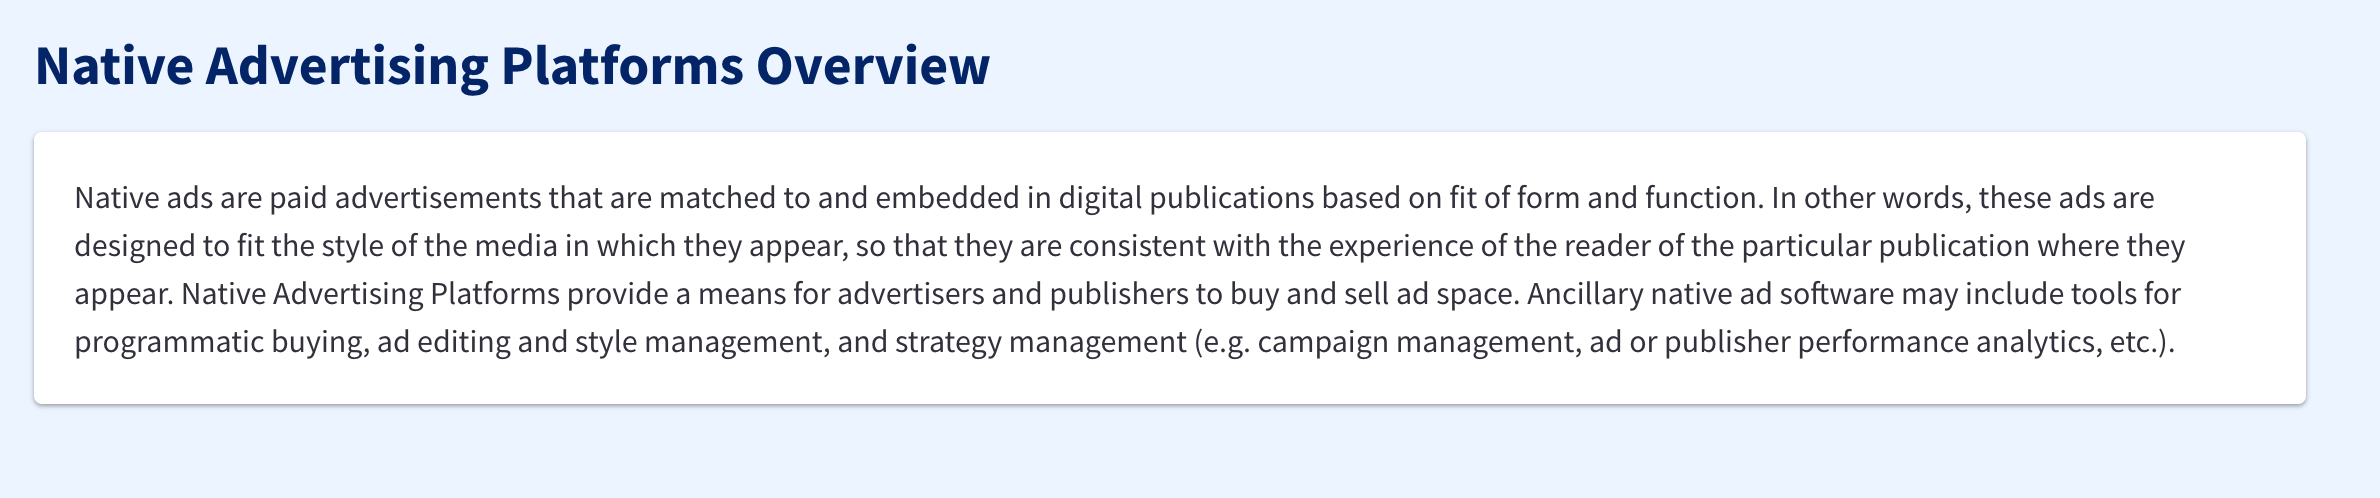 Native Advertising Platforms Overview